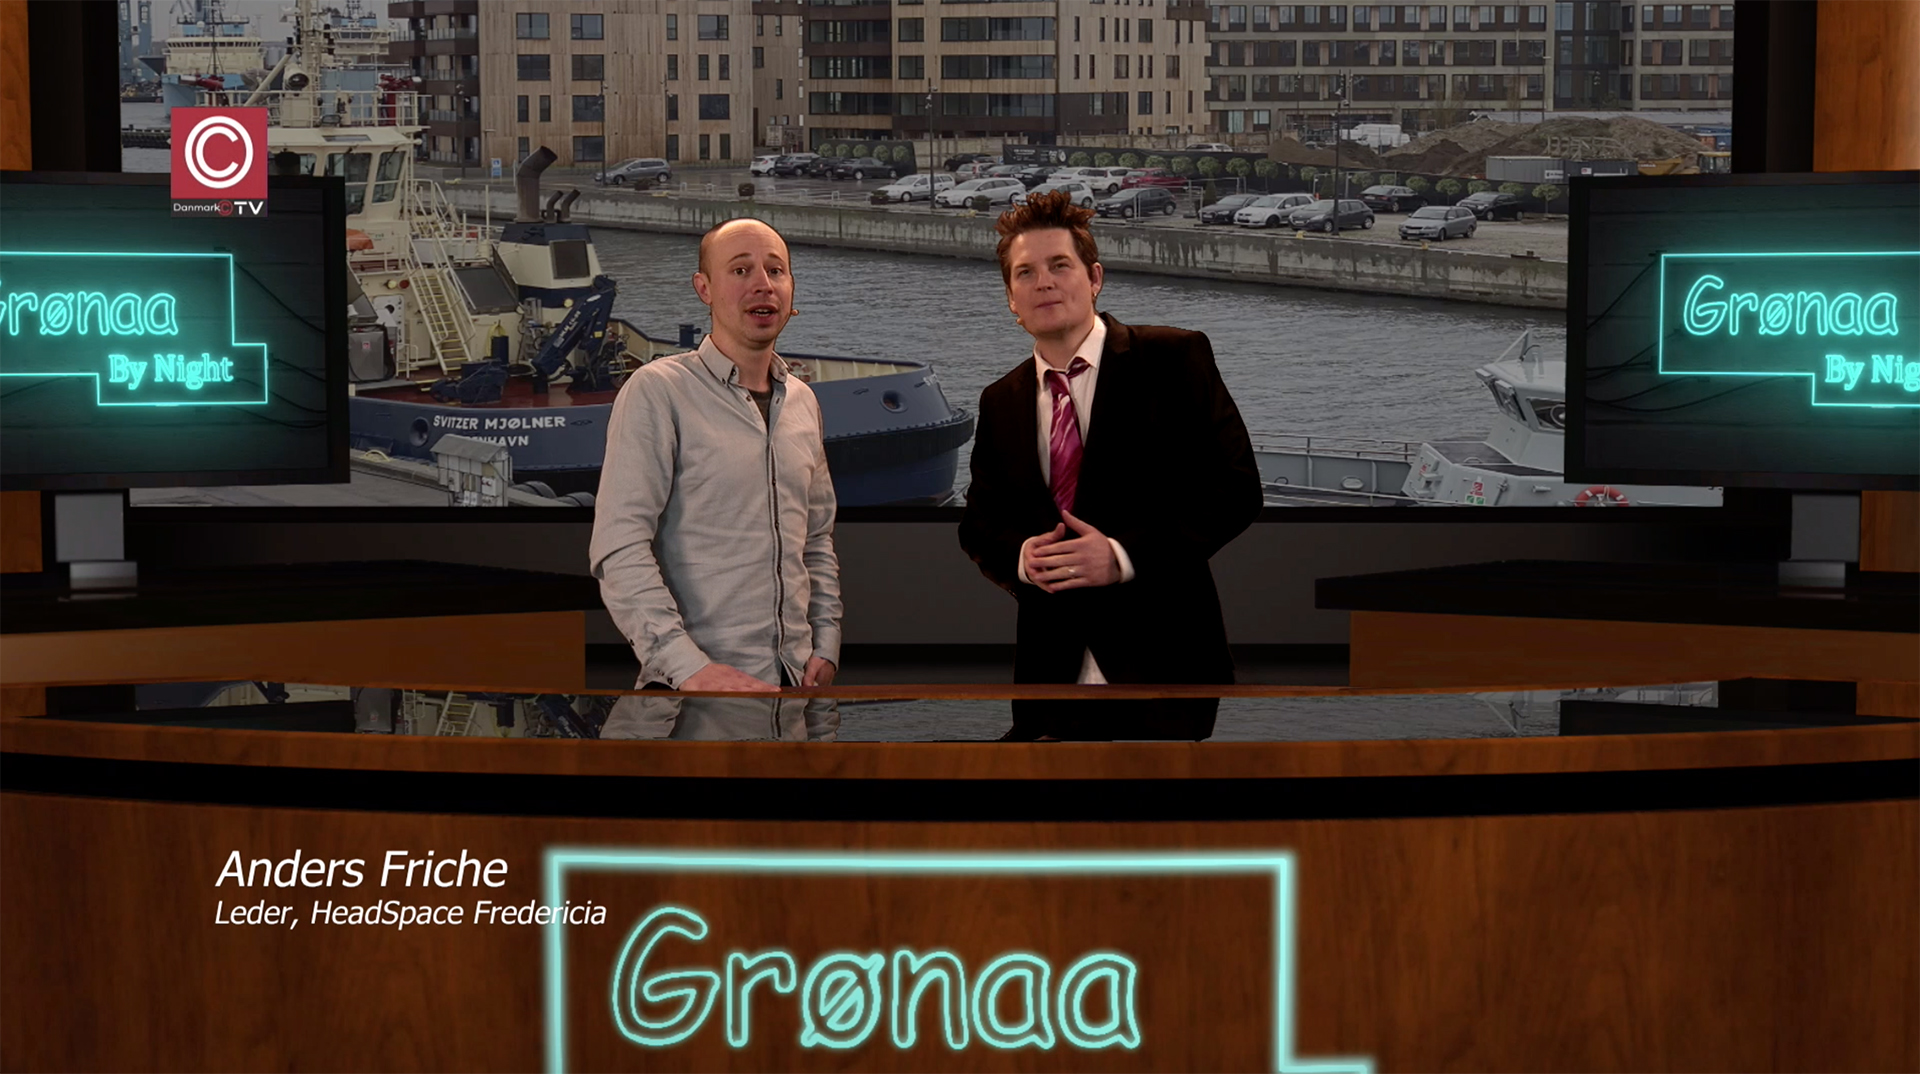 """Ugens gæst i Grønaa By Night – """"Anders Friche"""" fra Headspace"""